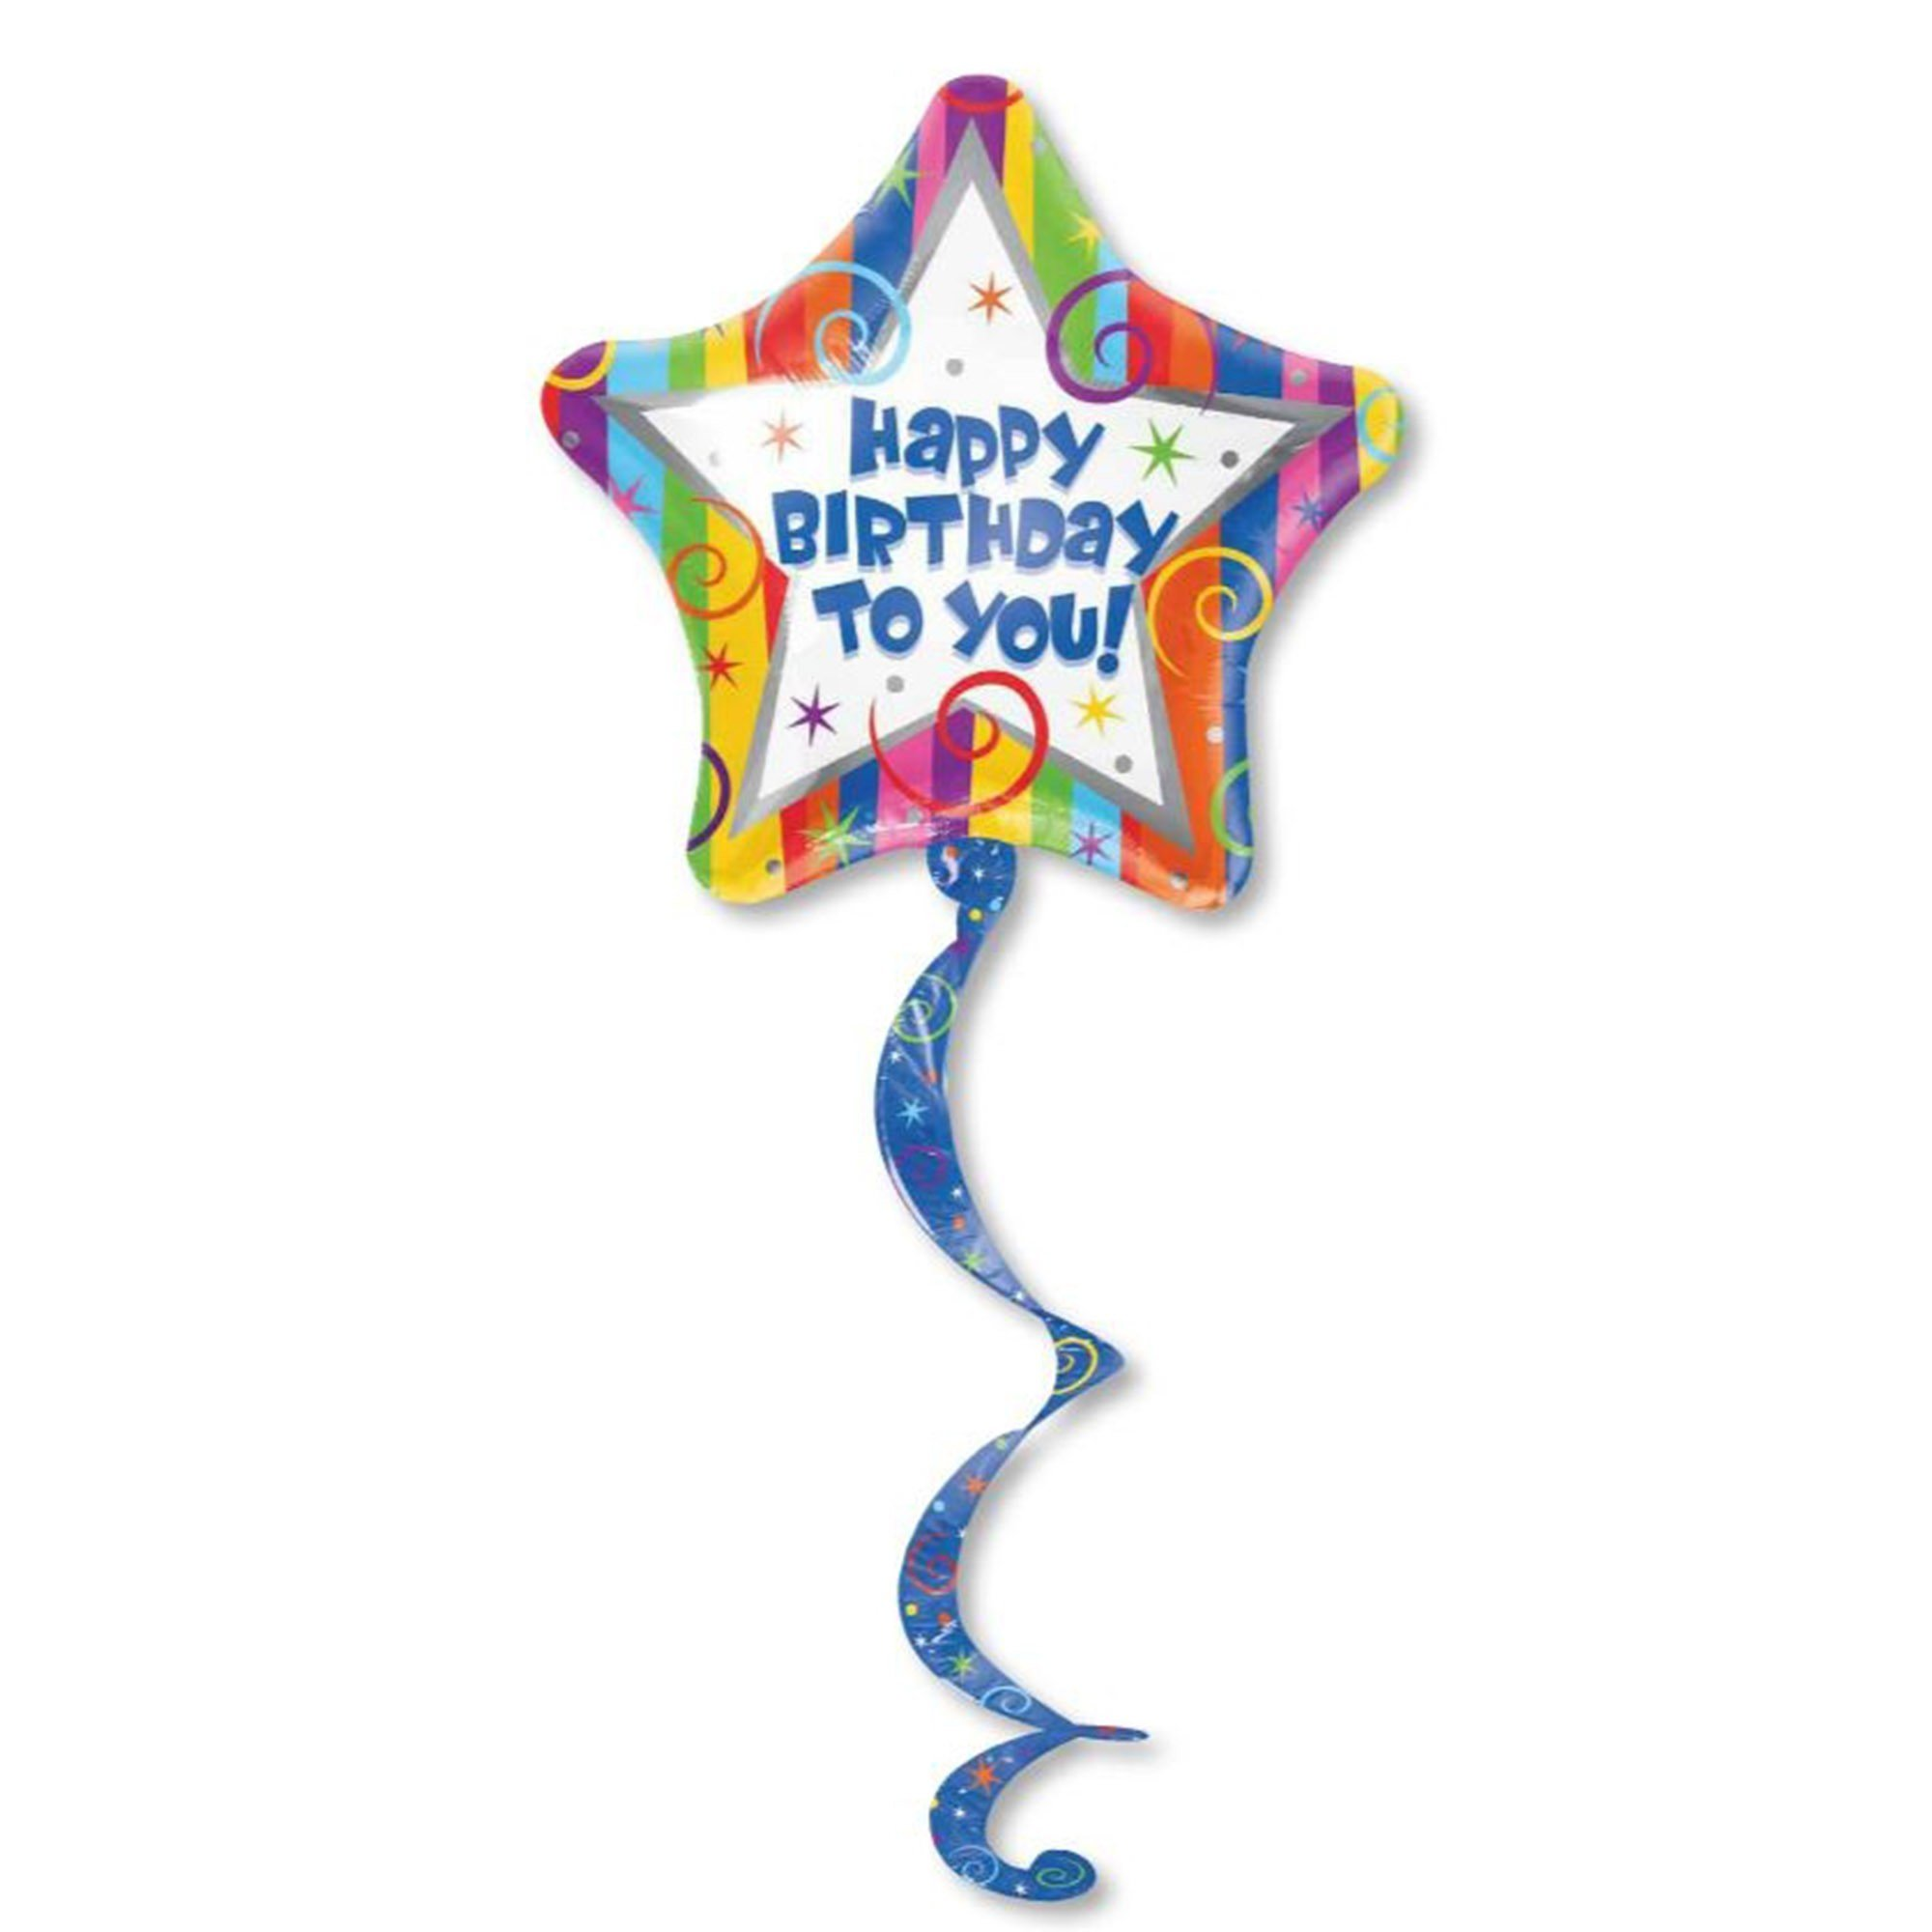 Airwalker Coil Tail Happy Birthday Streamer P70